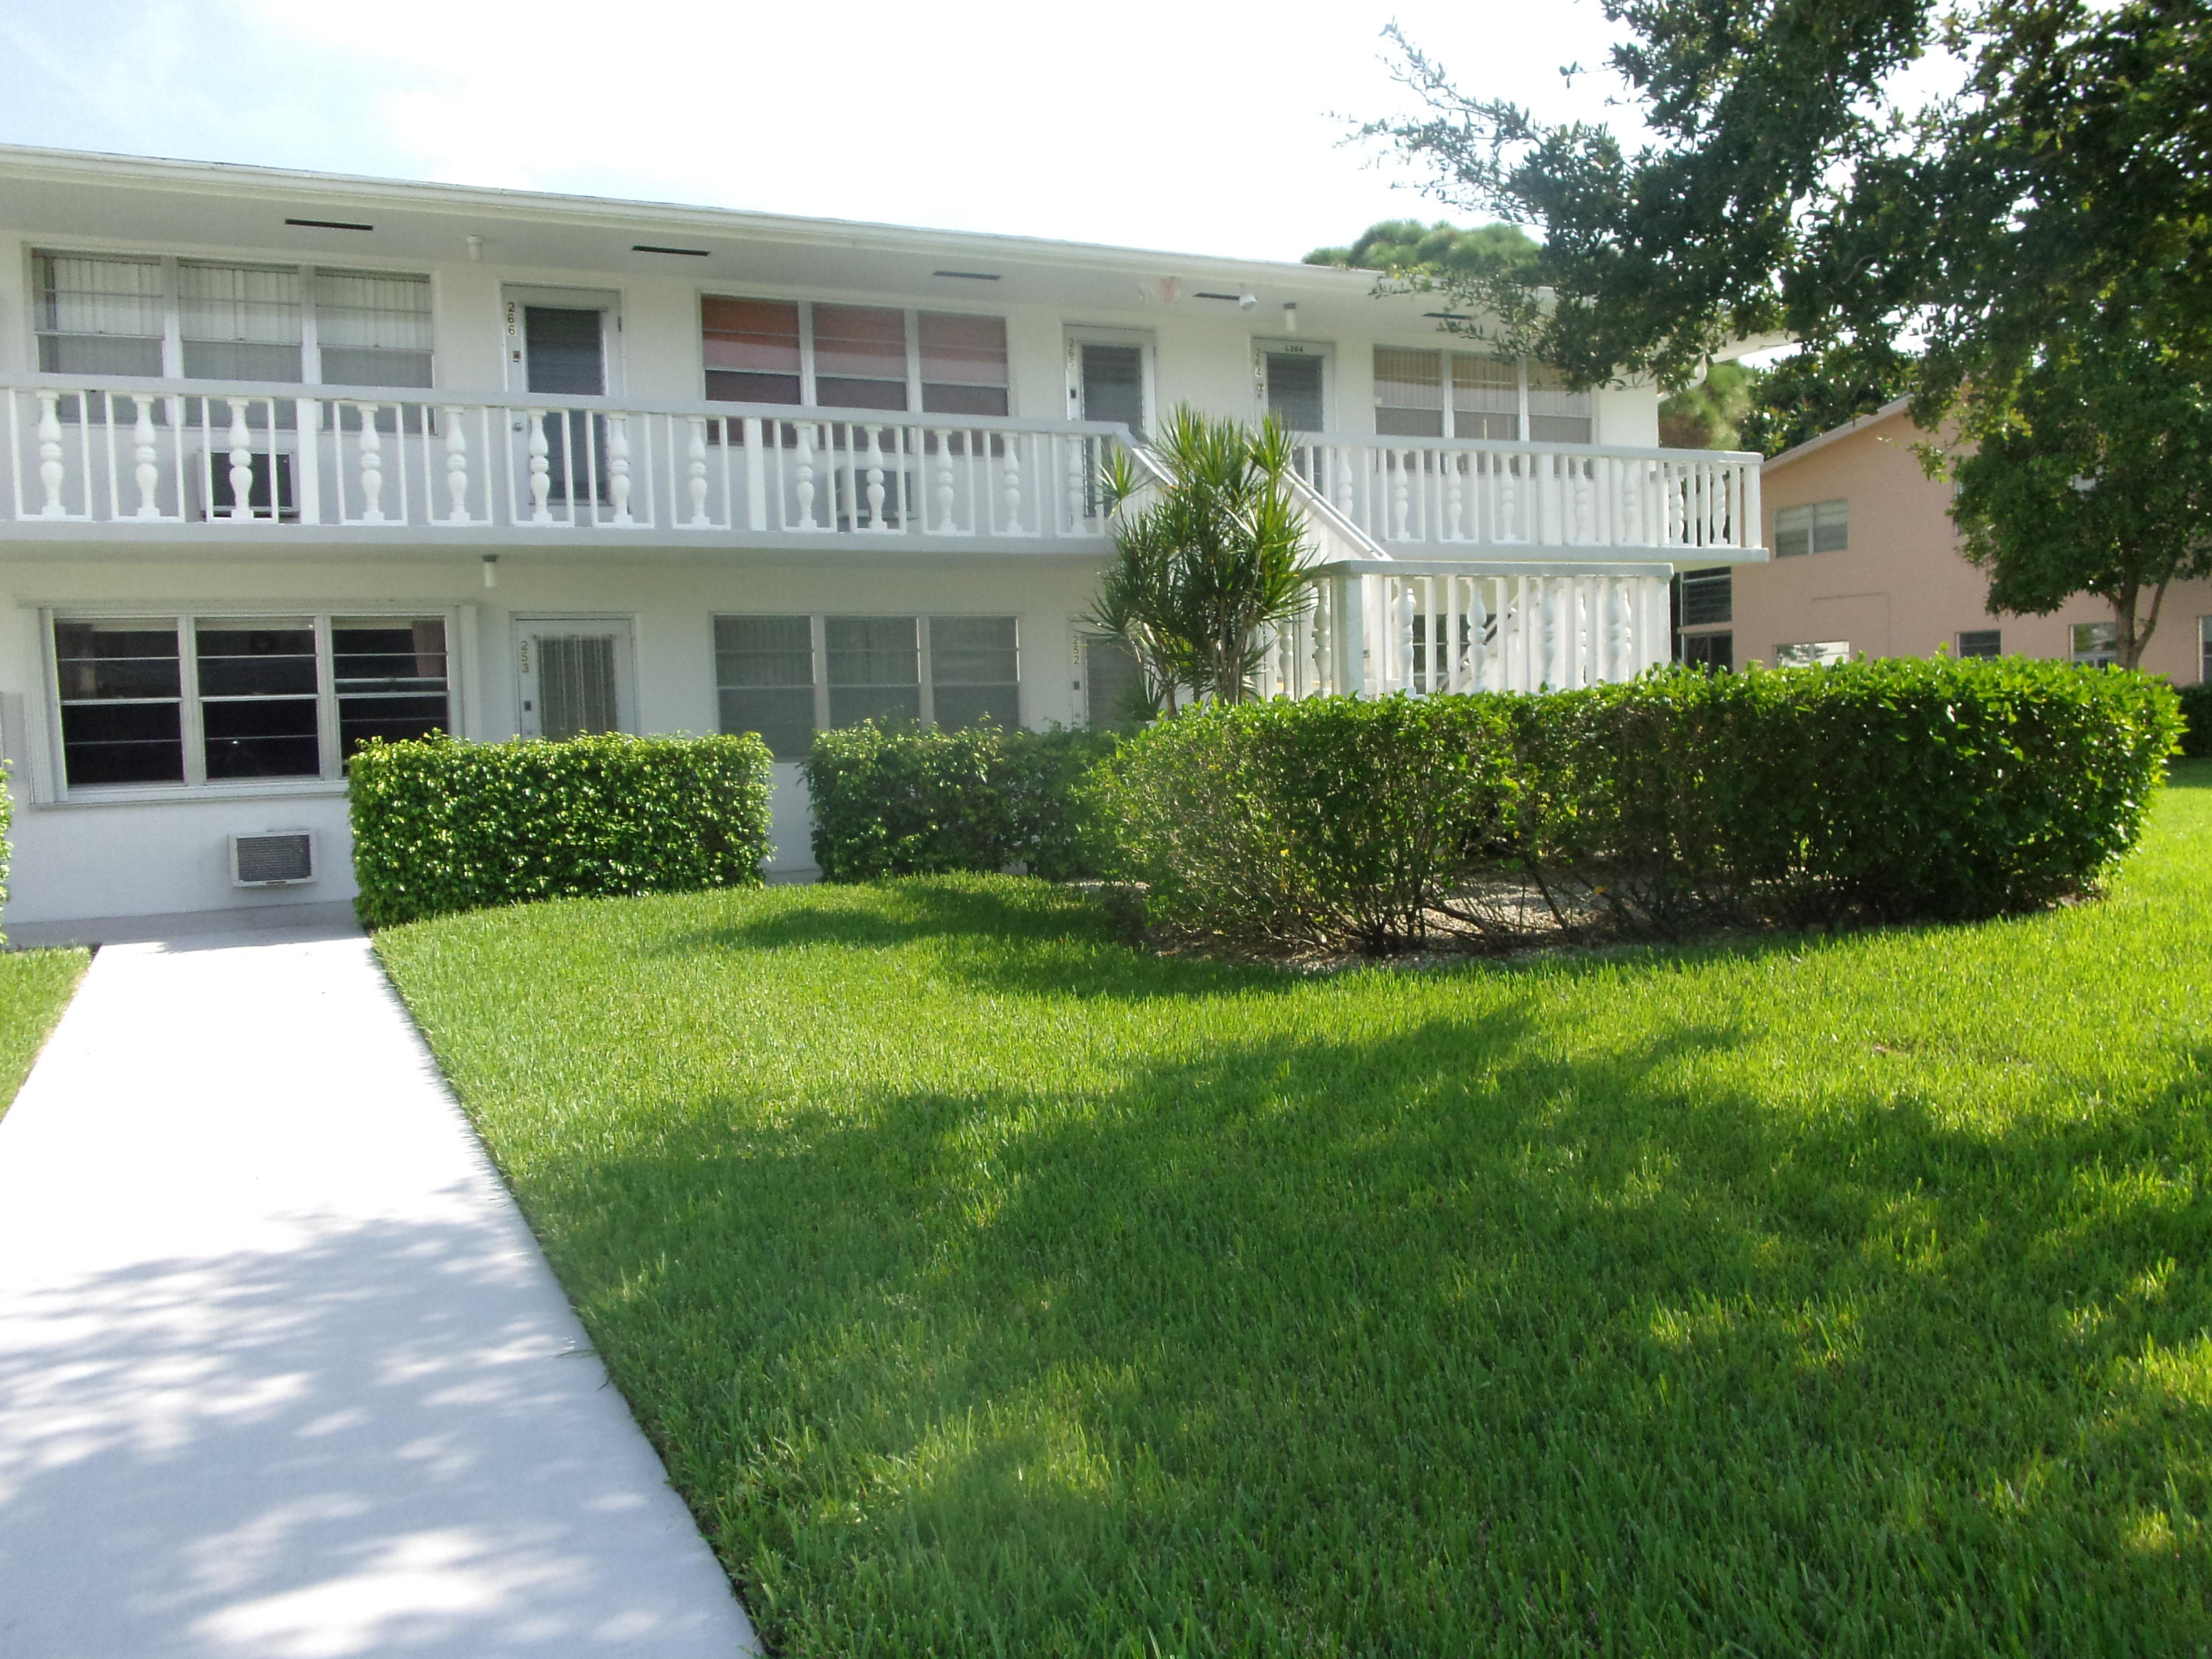 171 Coventry H, West Palm Beach, Florida 33417, 1 Bedroom Bedrooms, ,1.1 BathroomsBathrooms,Condo/Coop,For Rent,Coventry H,1,RX-10503567